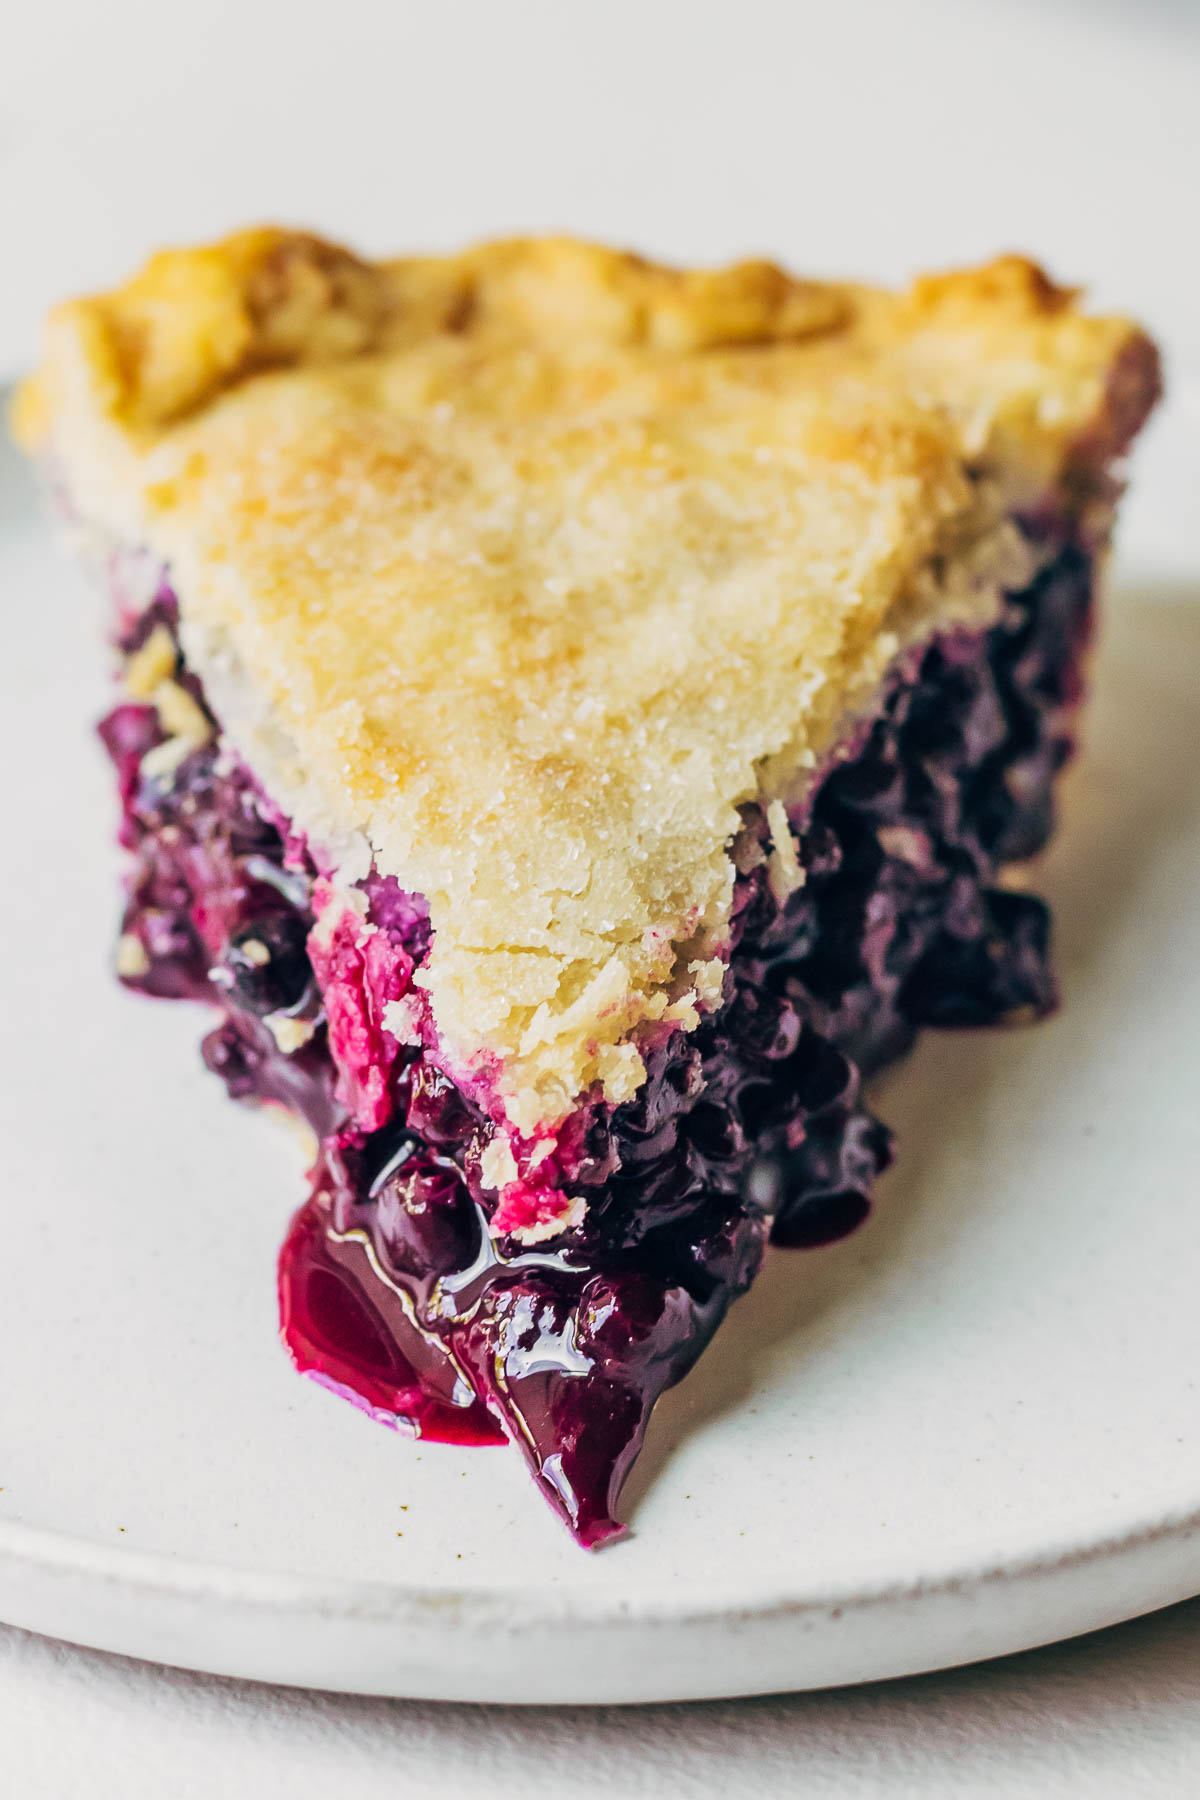 Close up of vegan blueberry pie on a plate.